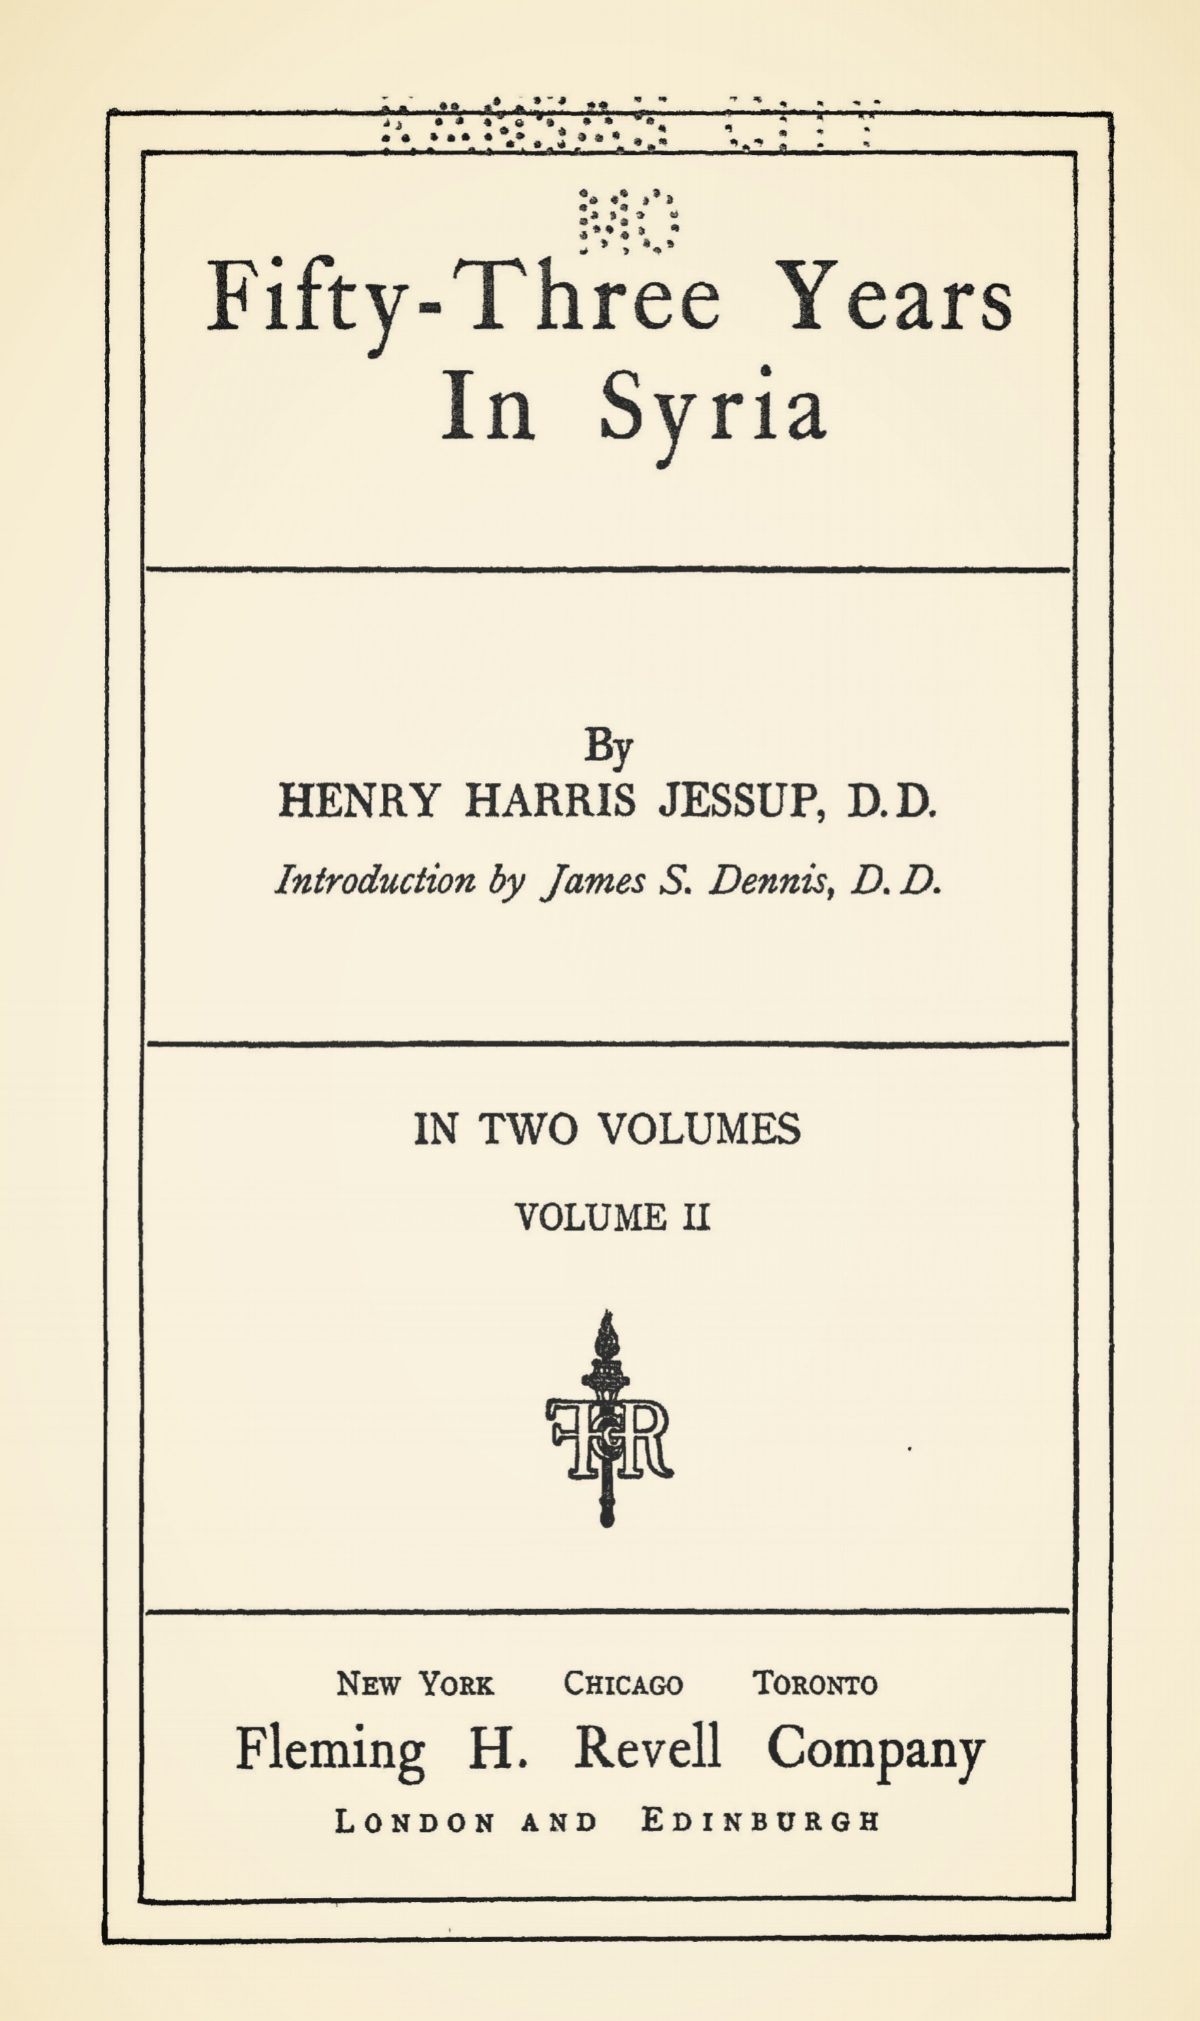 Jessup, Henry Harris, Fifty-Three Years in Syria, Vol. 2 Title Page.jpg